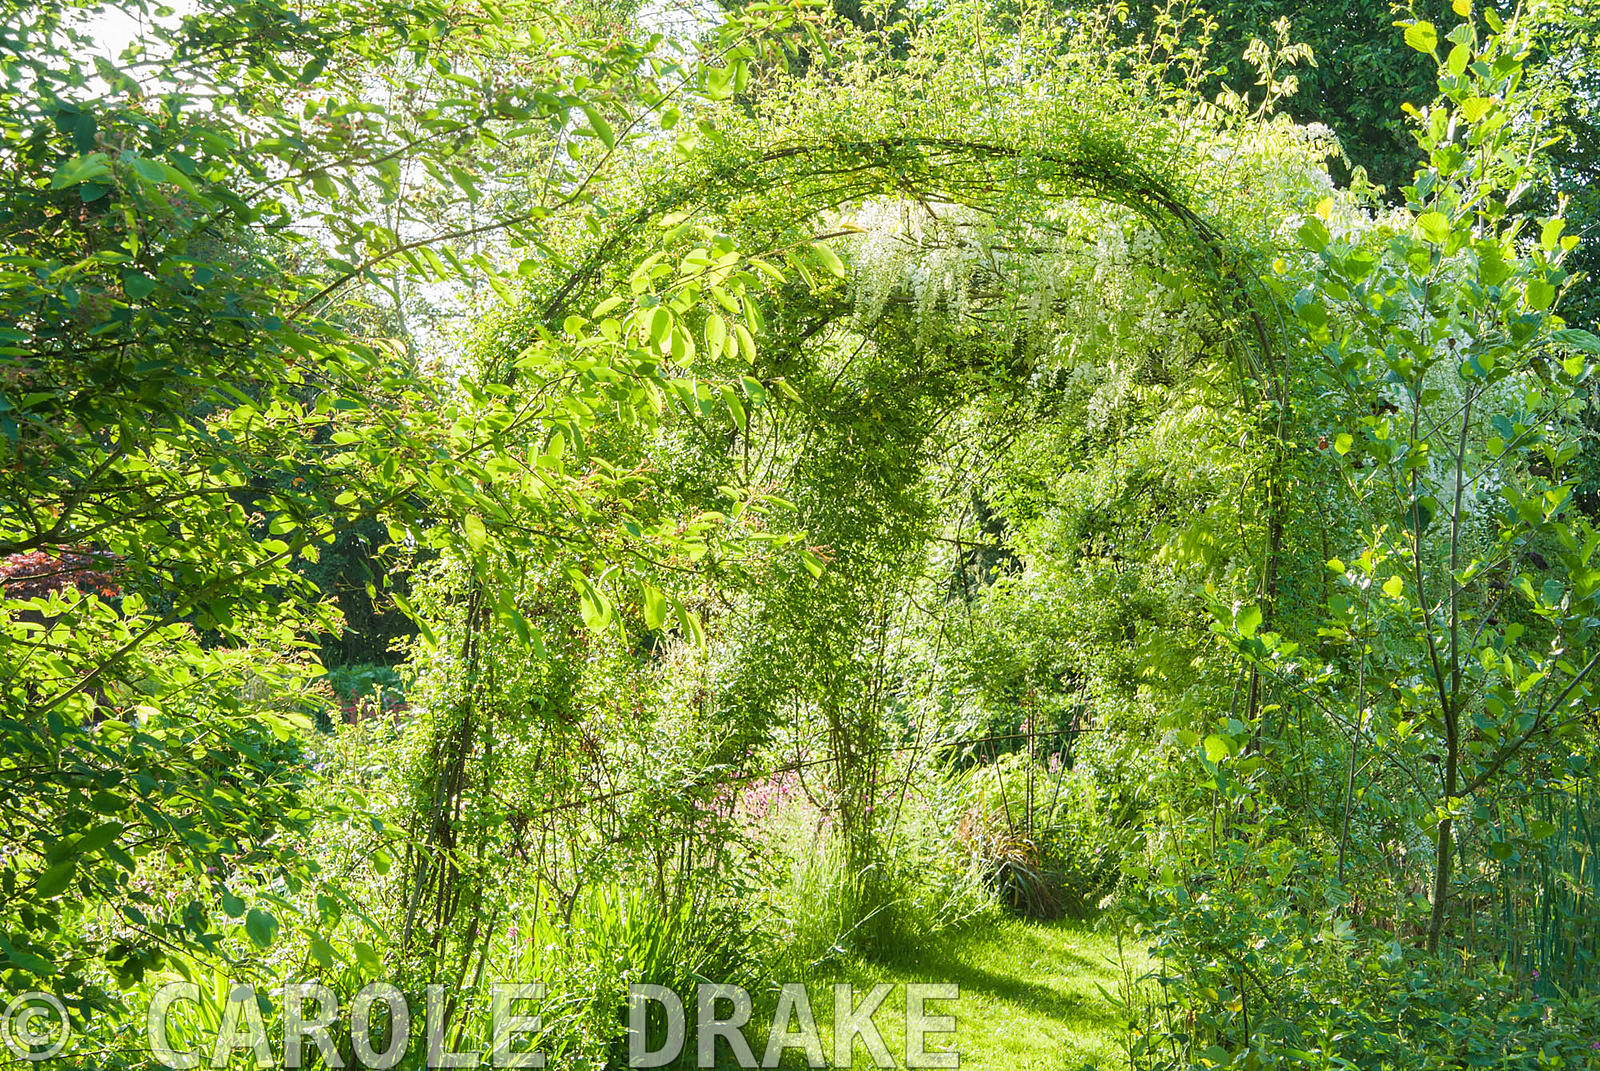 Pergola clothed with white wisteria. Westonbury Mill Water Garden, Pembridge, Herefordshire, UK